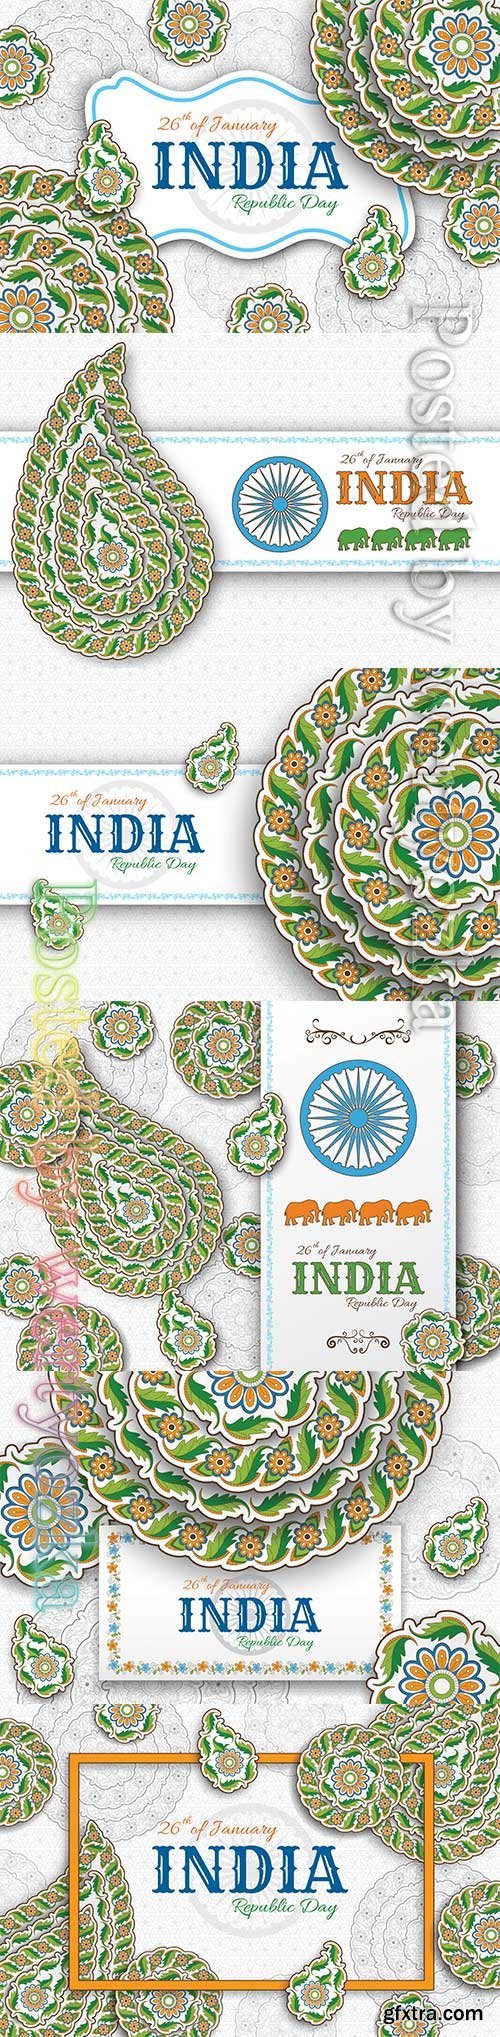 Indian Republic Day background with paisley and mandala